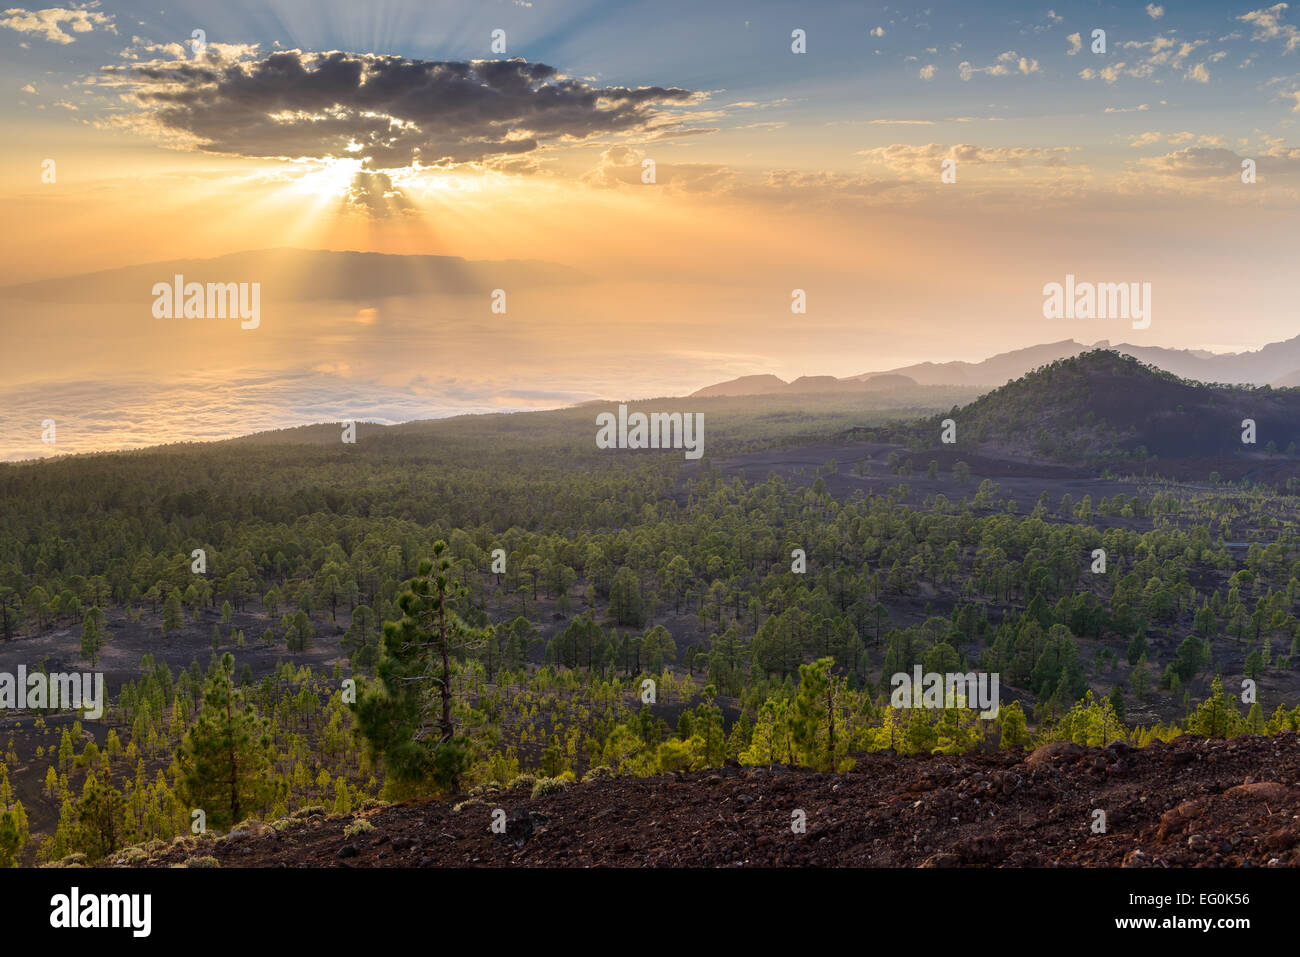 Spain, Canary Islands, Tenerife, Fascinating volcanic landscape - Stock Image